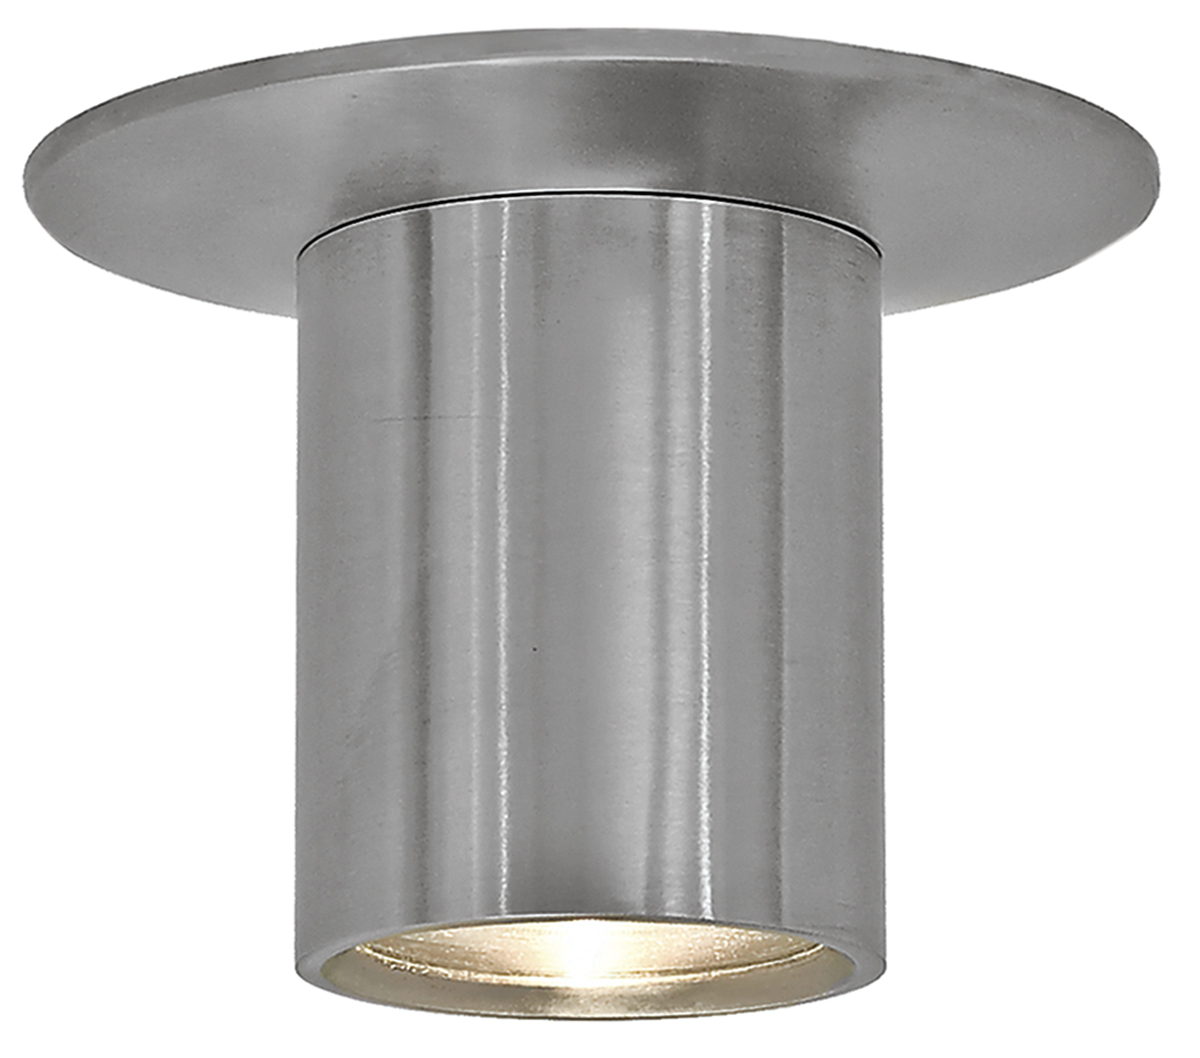 Rocky h2 120 volt ceiling mount downlight by edge lighting - Bathroom lighting fixtures ceiling mounted ...